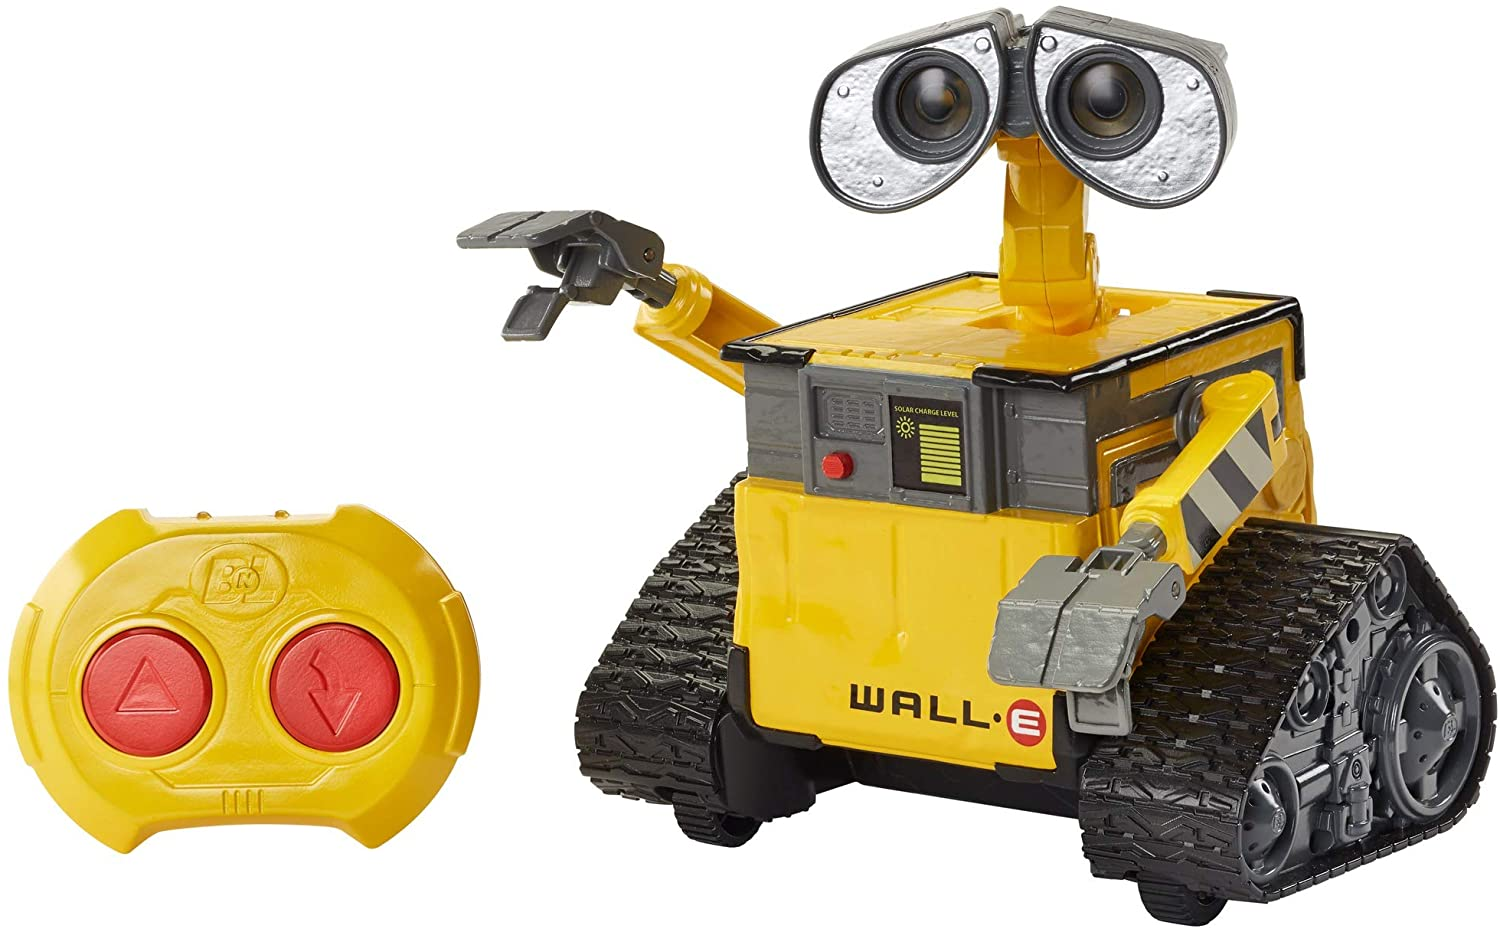 Disney Pixar Wall-E Remote Control Robot Toy 9.5-in 24-cm Tall, Kids Gift for Ages 4 Years Old & Up